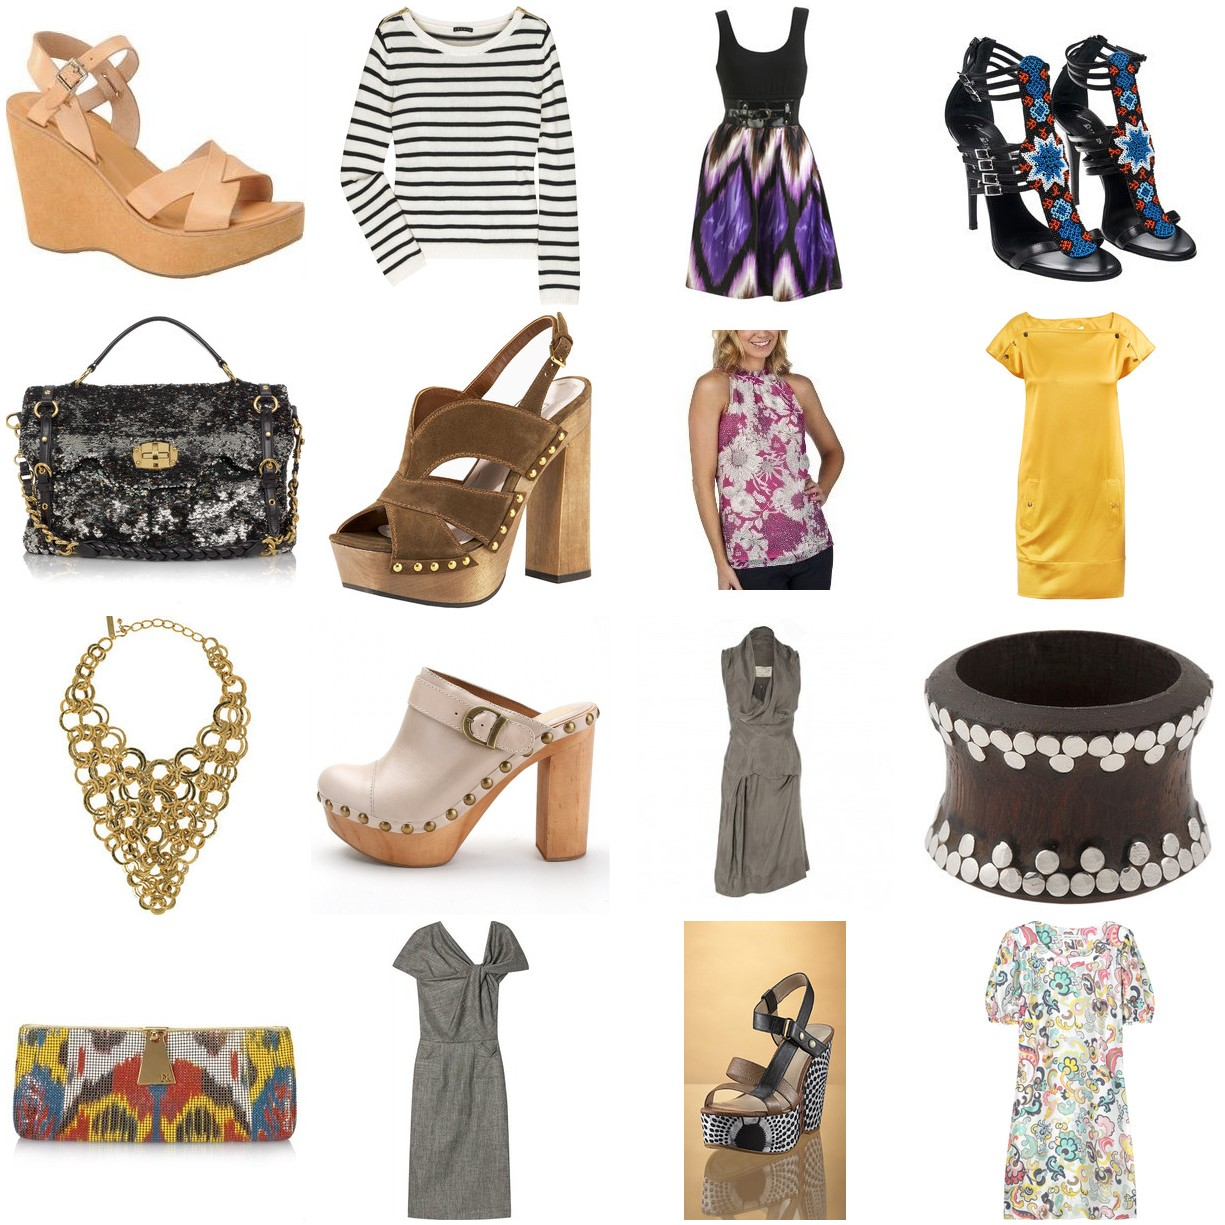 Top Ten Fashion Trends for Spring 2013